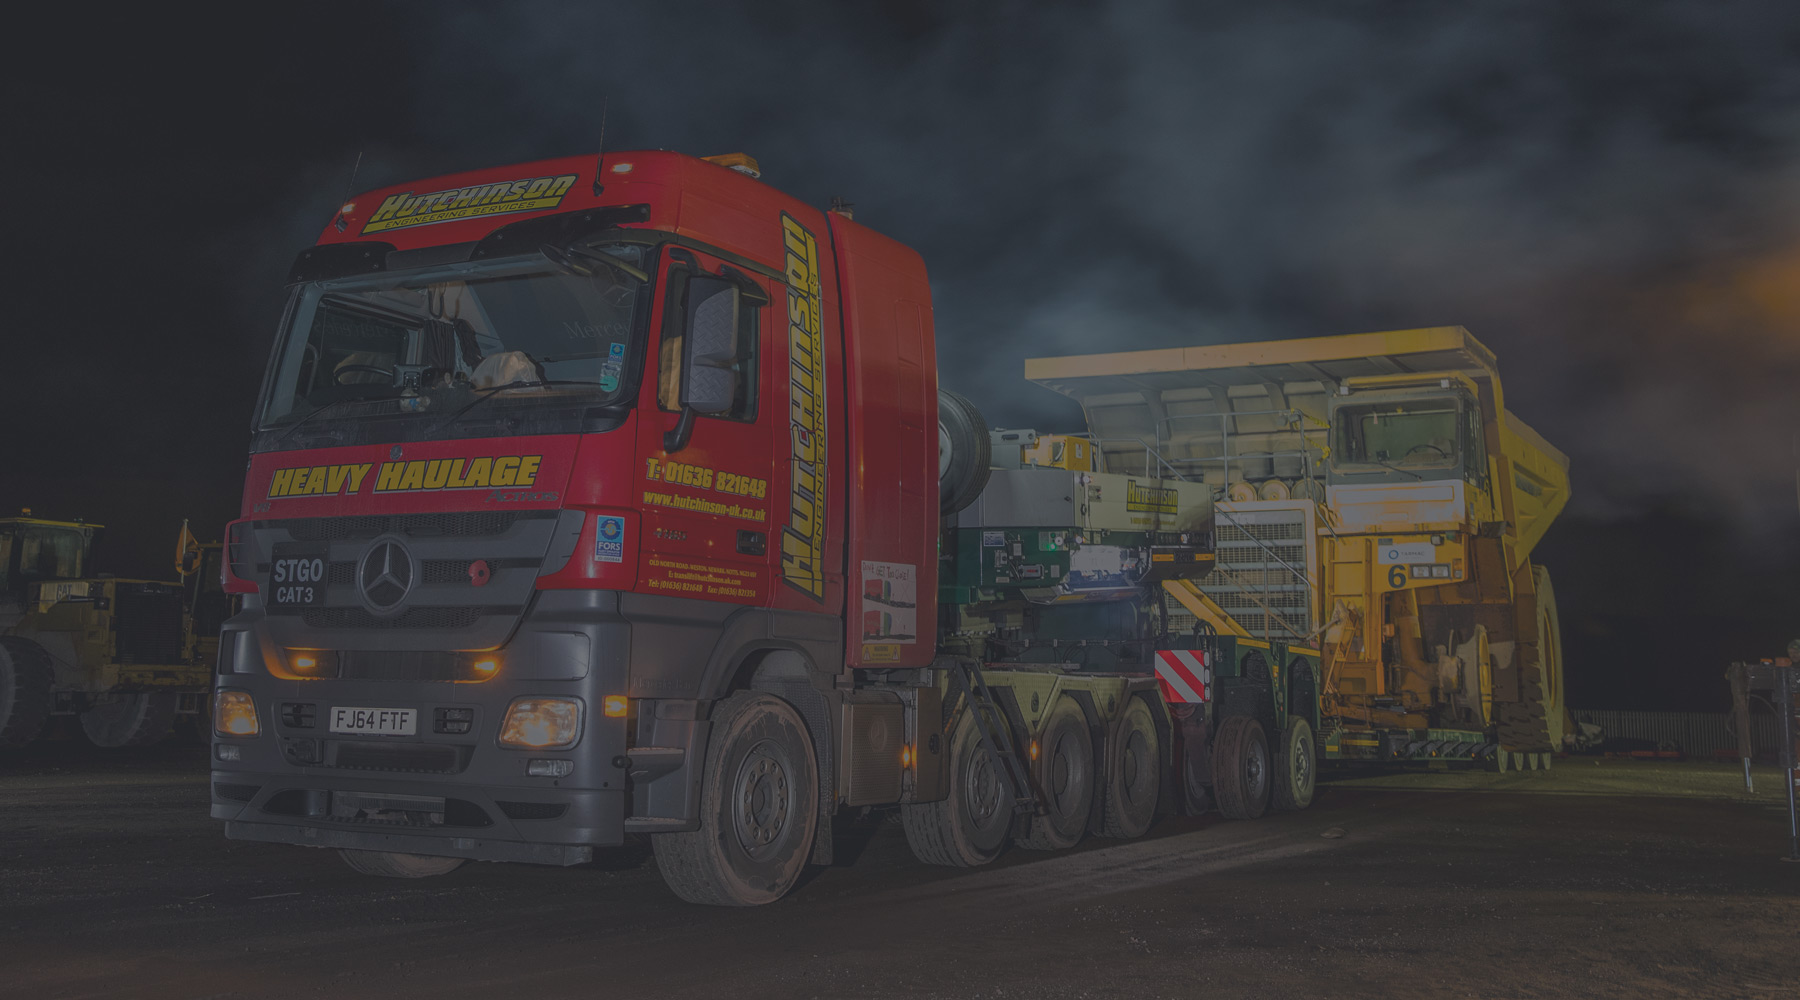 Hutchinsons Engineering Services Heavy Haulage